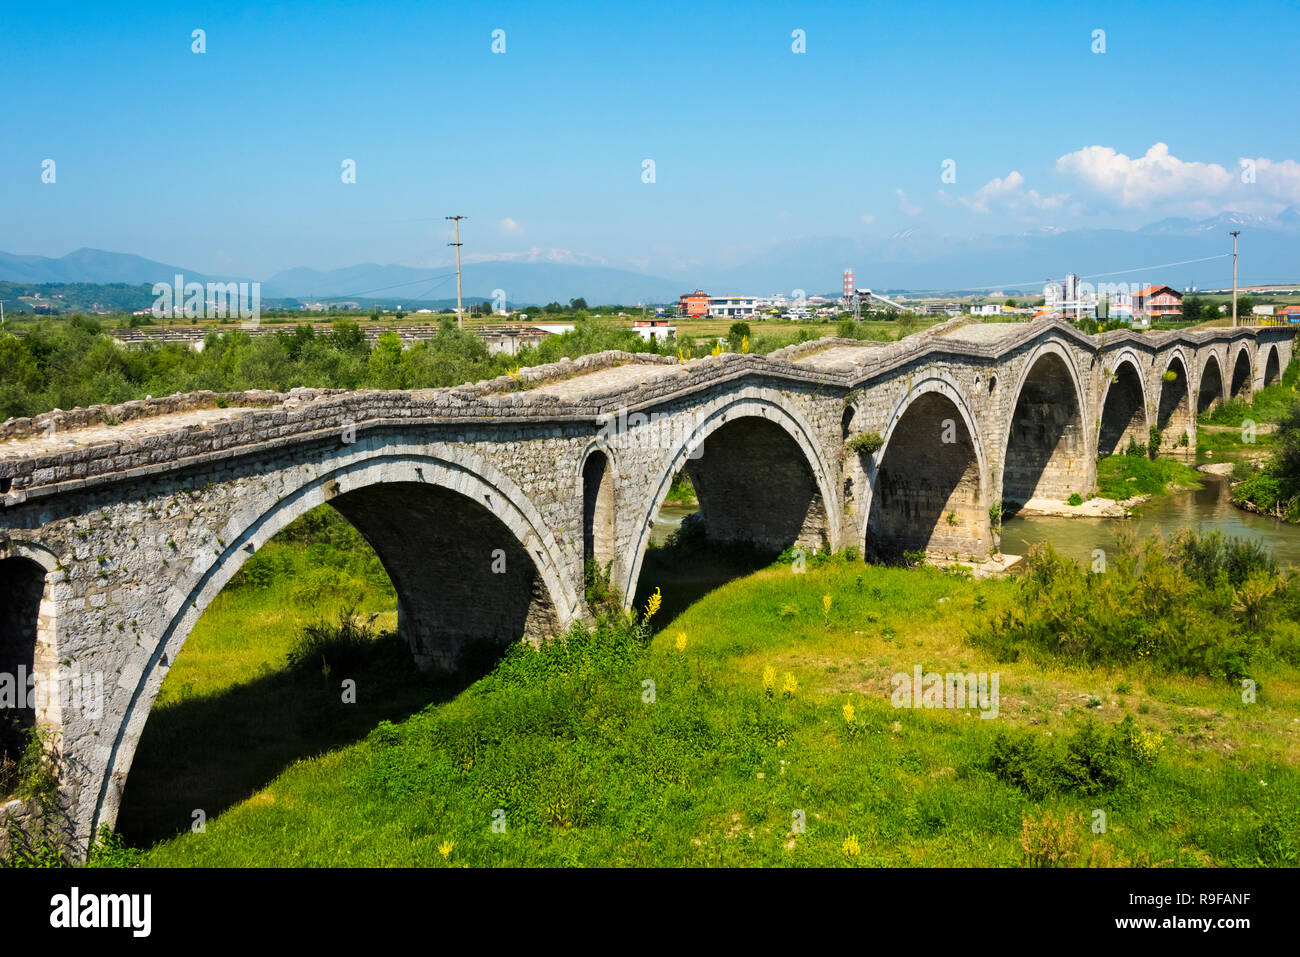 Terzijski Bridge (Tailor's Bridge), an Ottoman bridge, over Erenik river, Gjakova, Kosovo - Stock Image